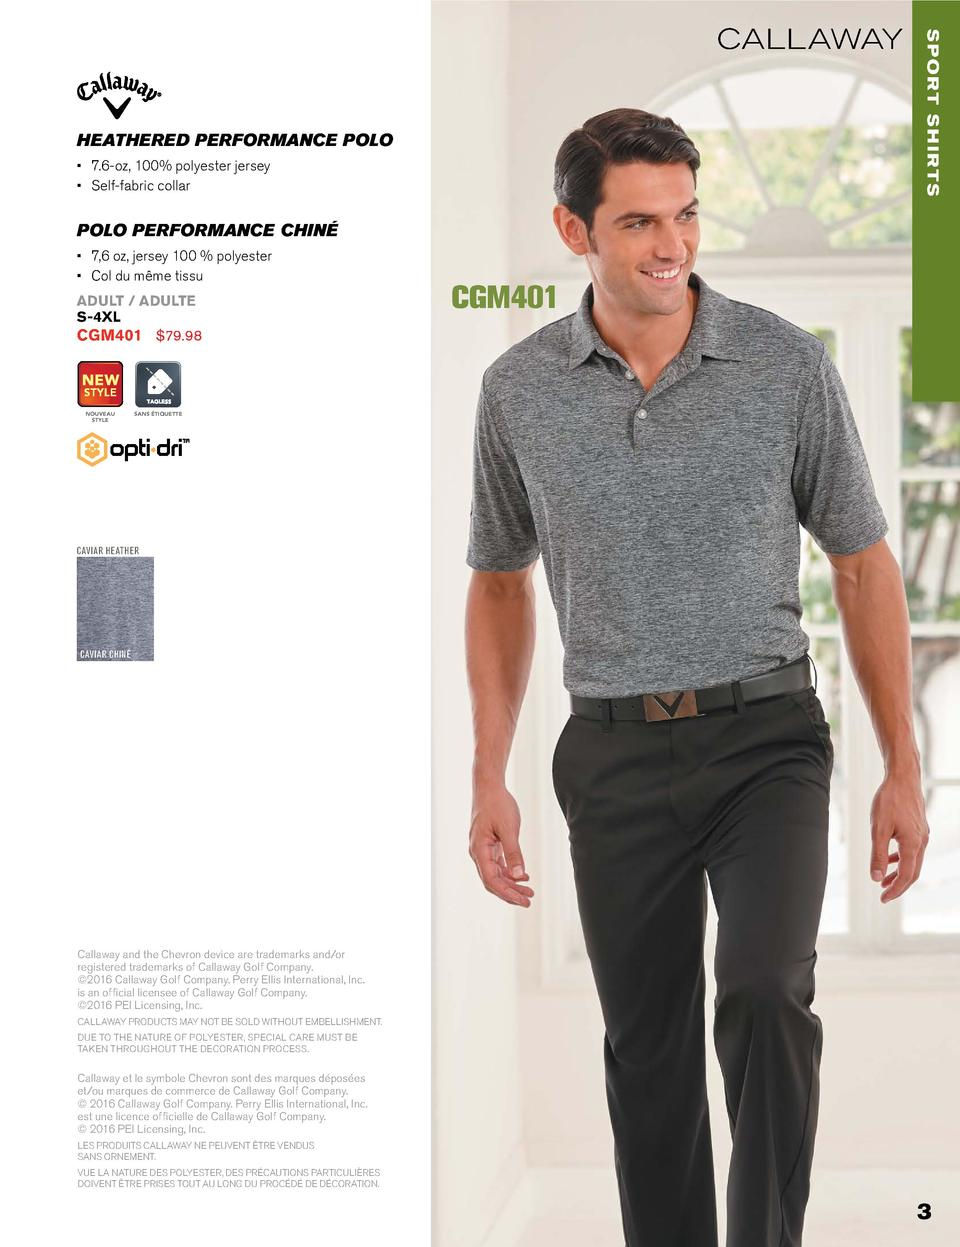 HEATHERED PERFORMANCE POLO      7.6-oz, 100  polyester jersey      Self-fabric collar  sport shirts  callaway  POLO PERFOR...